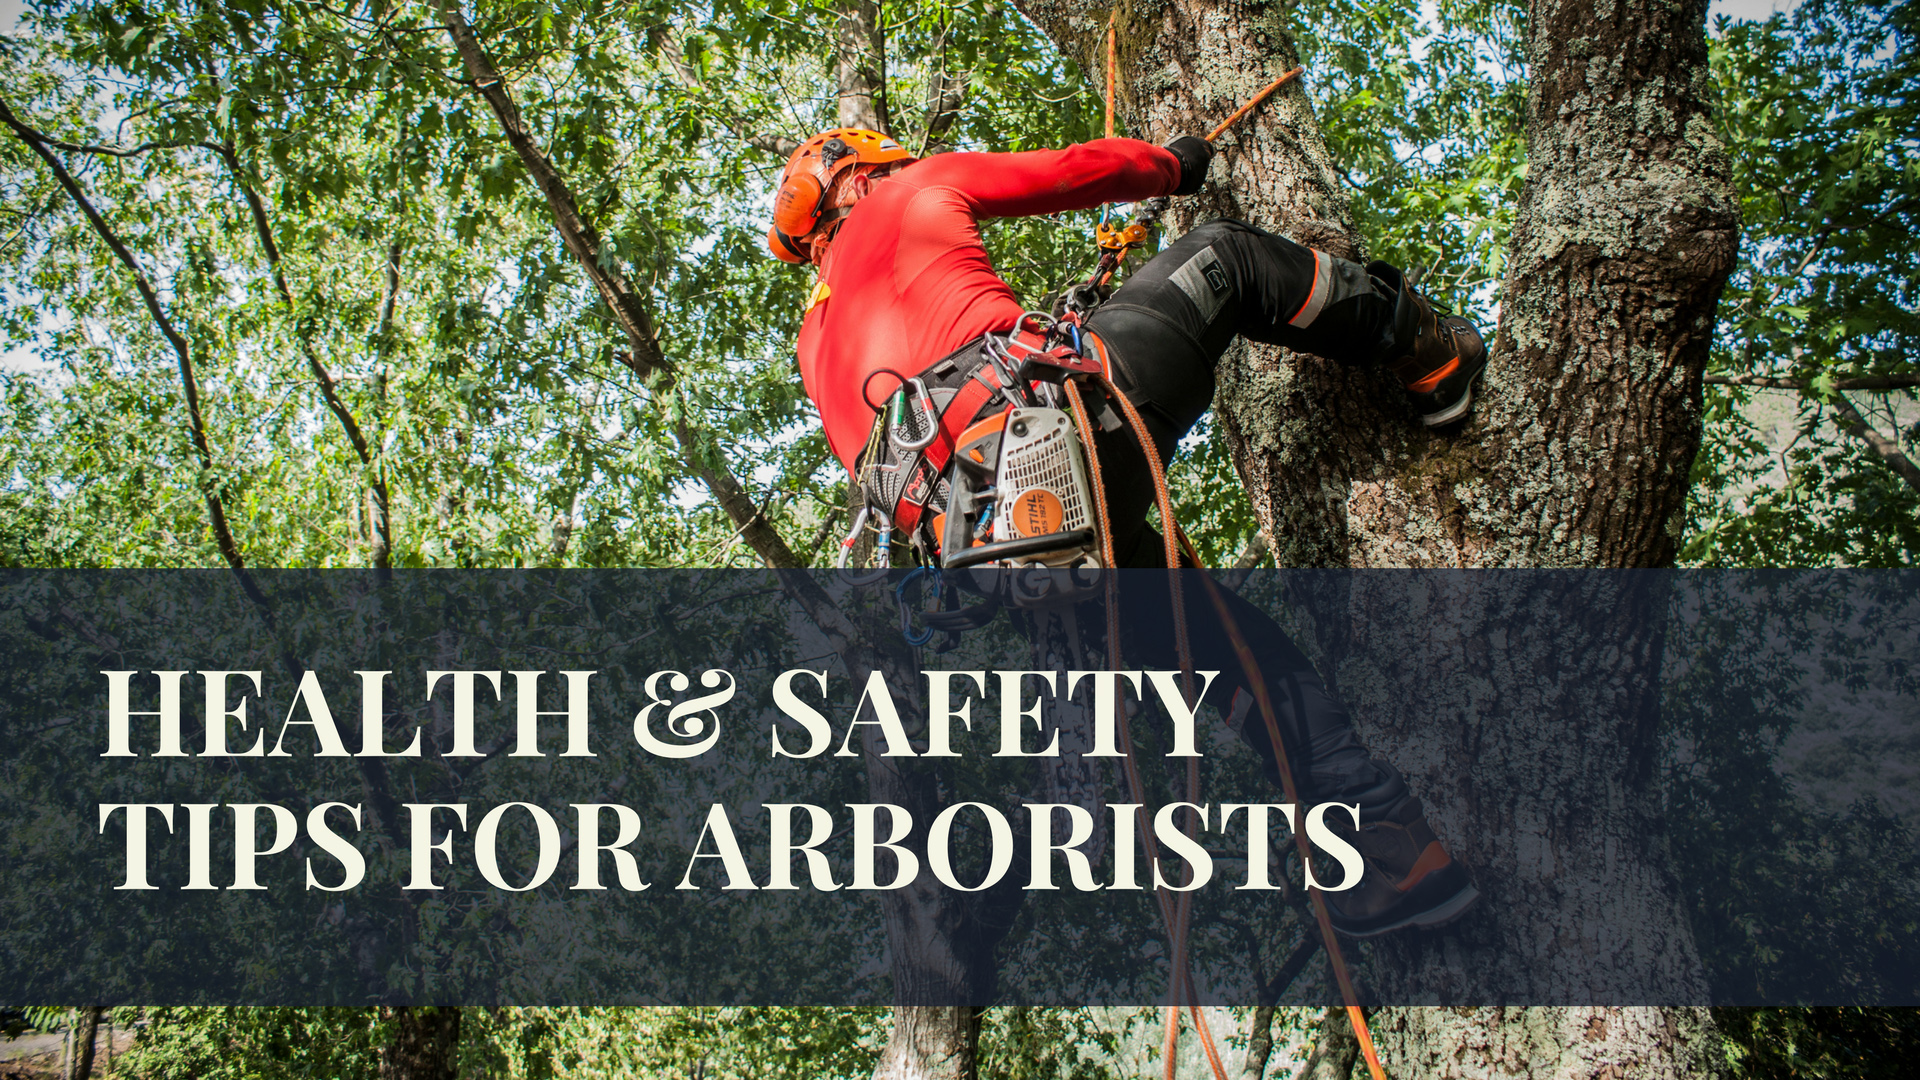 Tips for Arborists